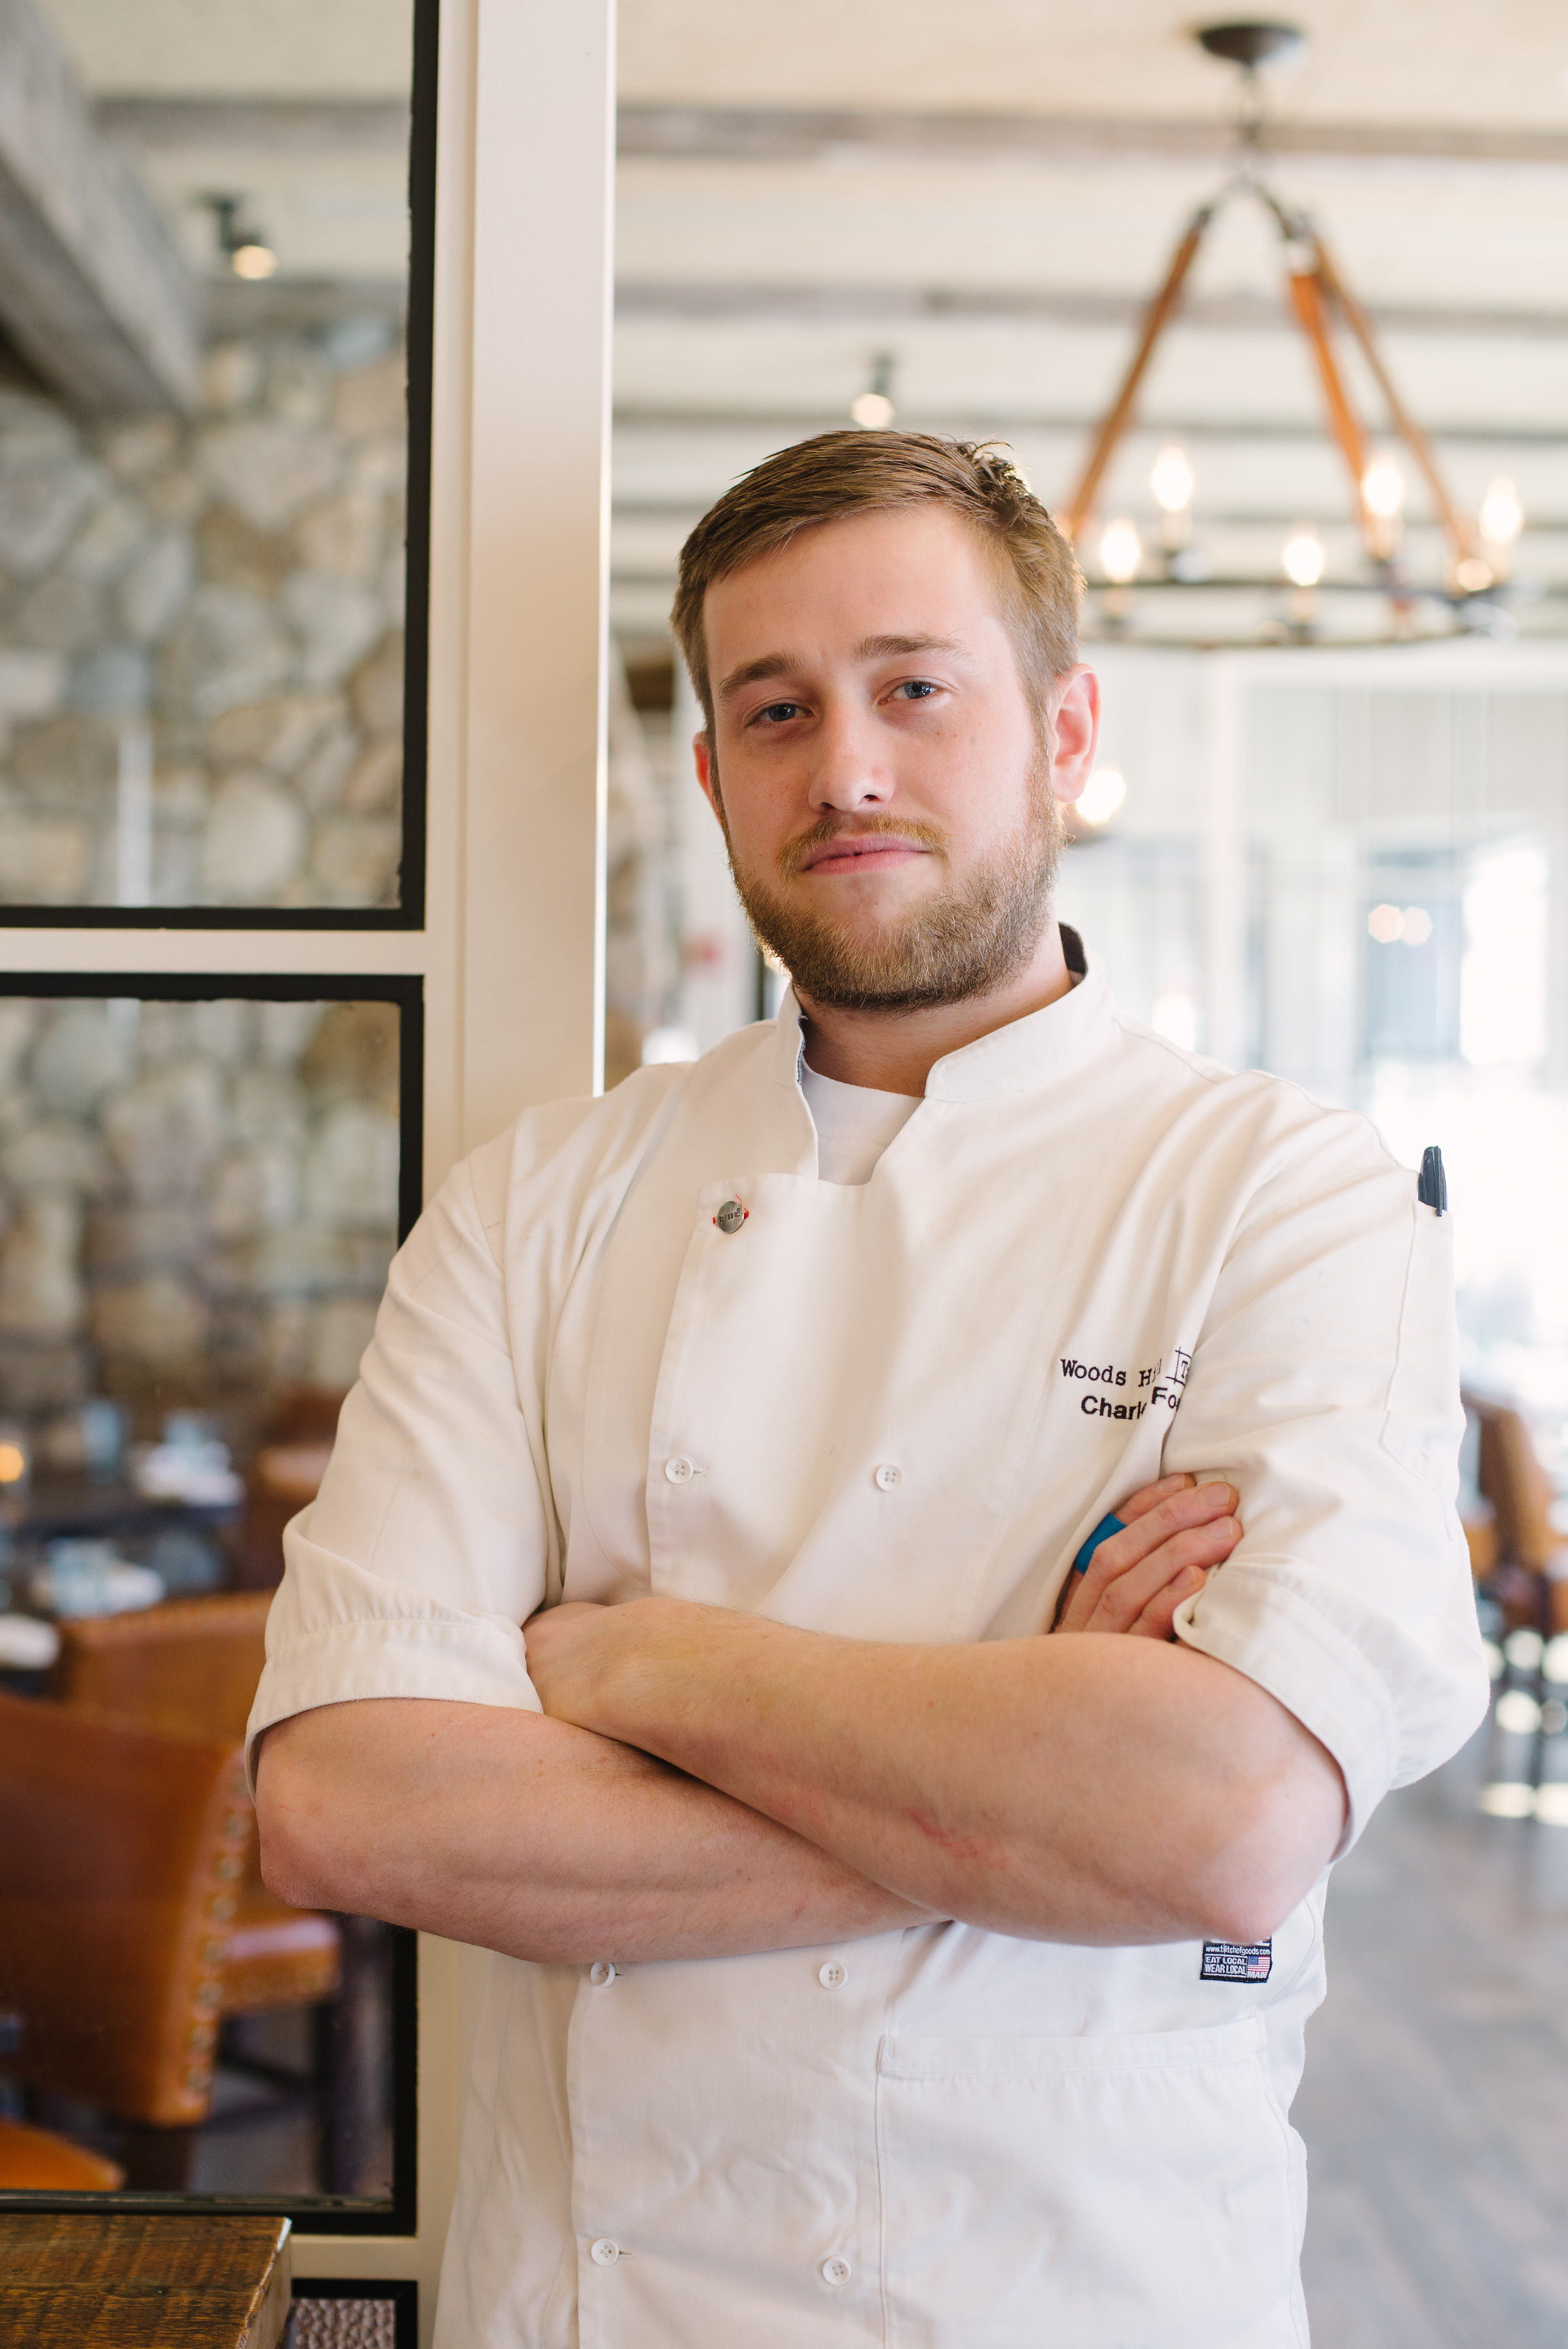 Charlie Foster - Executive Chef